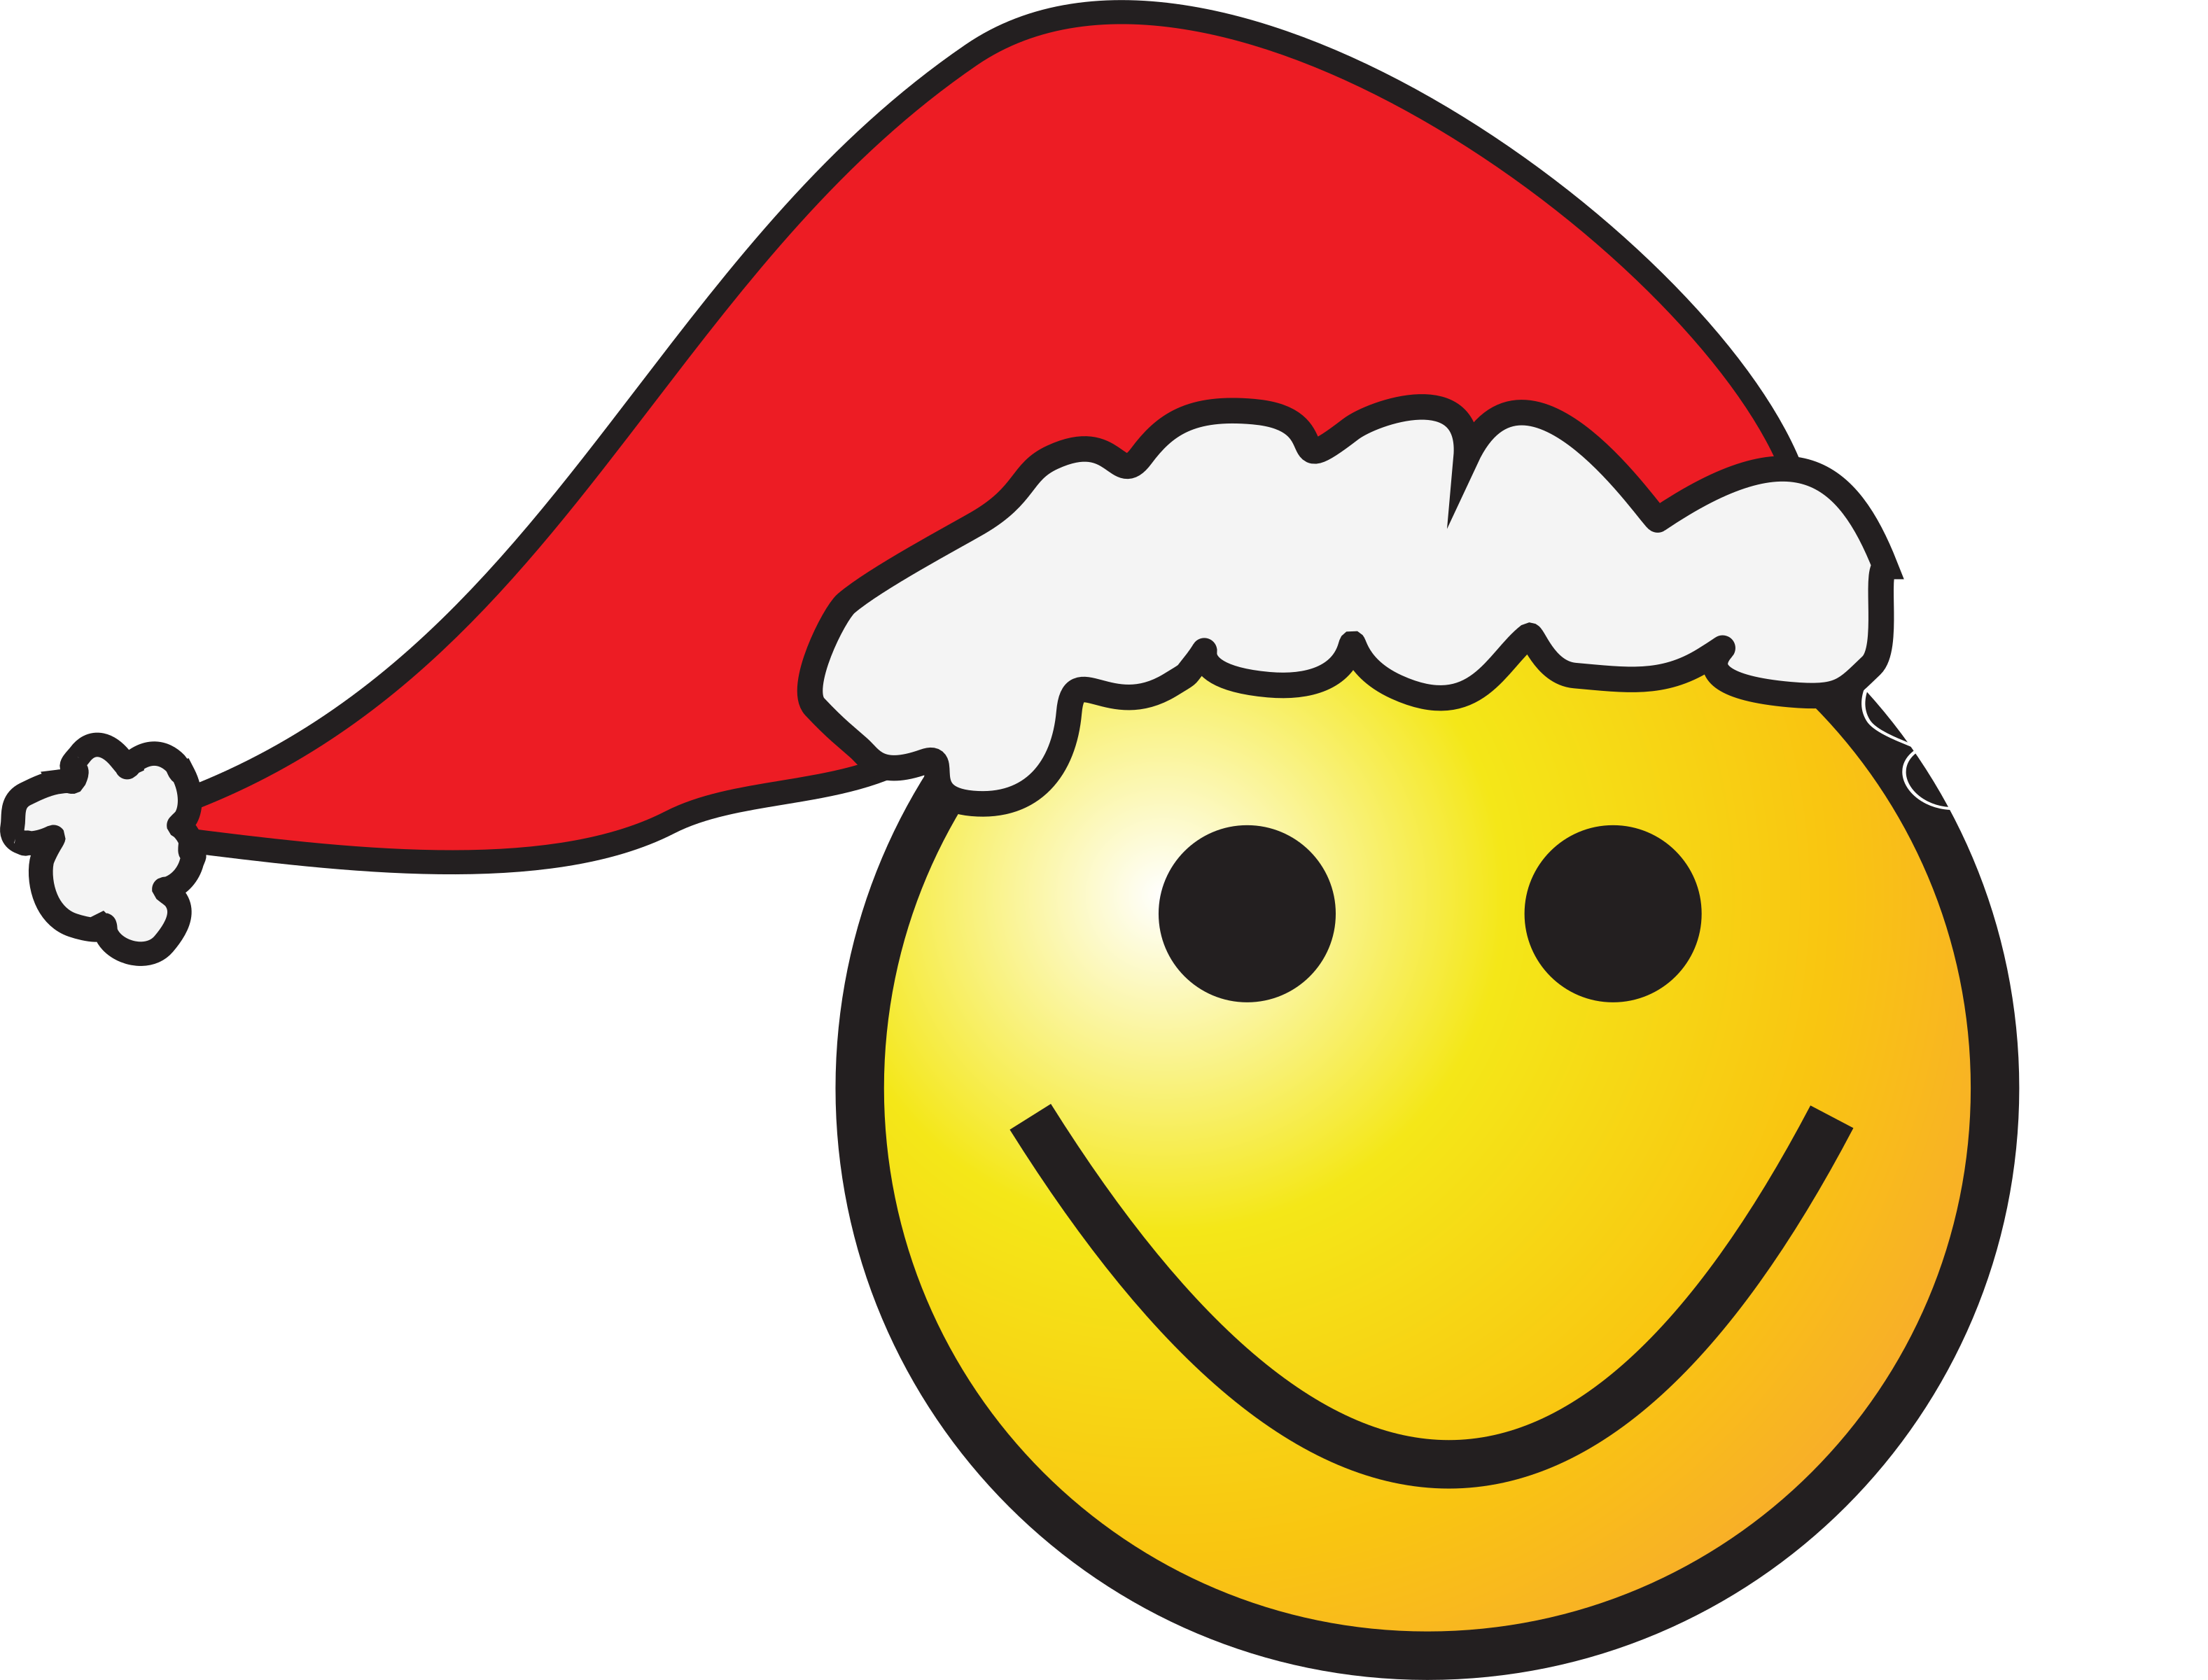 Santa-Smiley by zorro